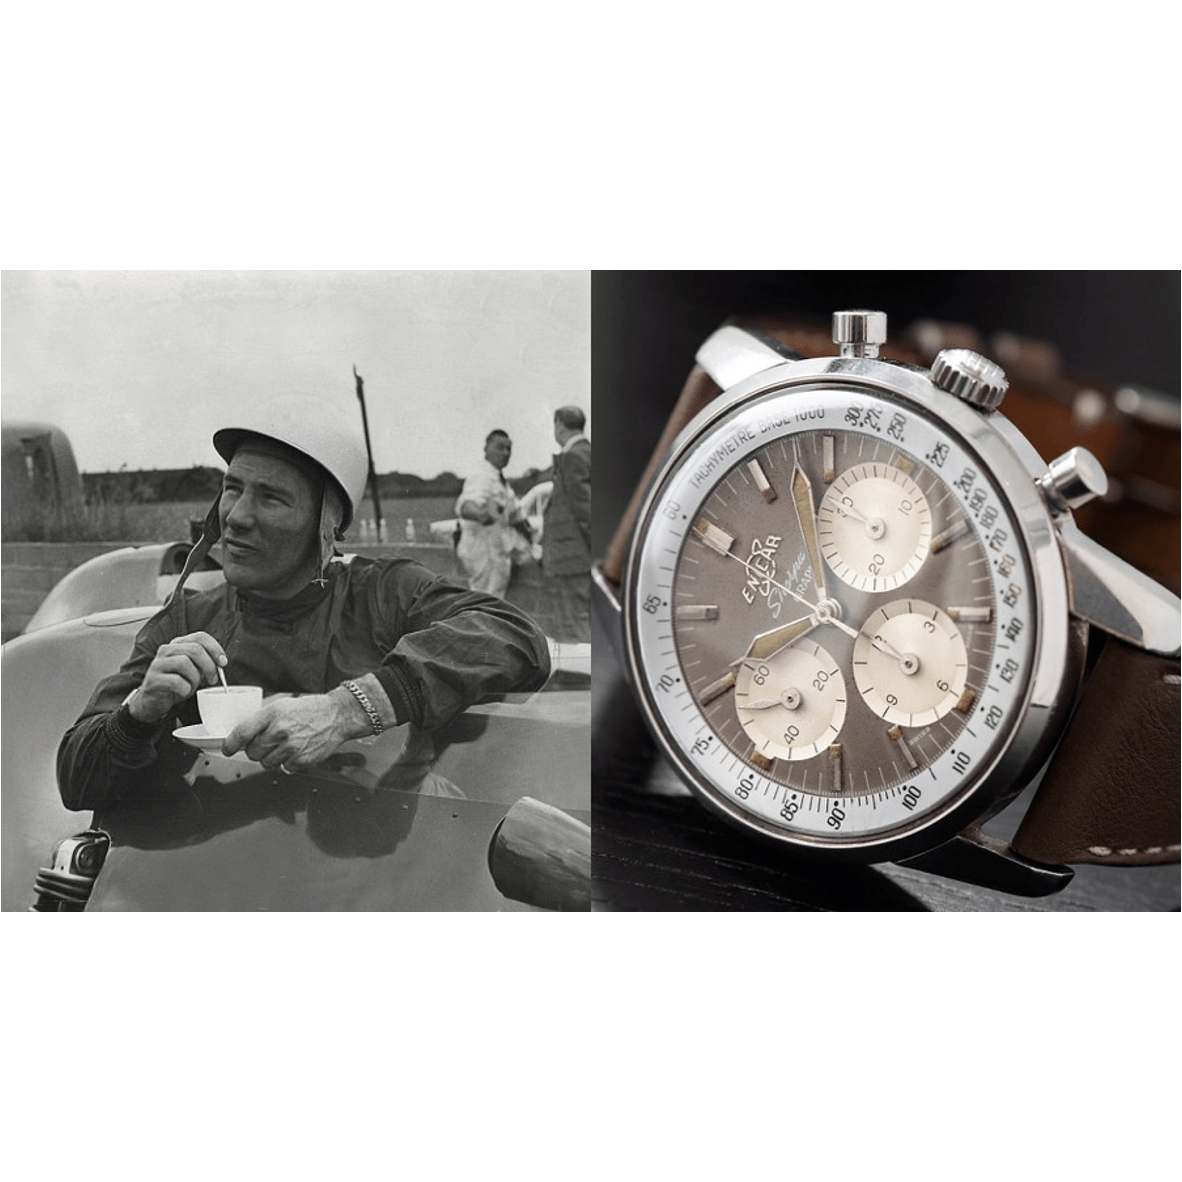 Racing Watches: Enicar & Sir Stirling Moss